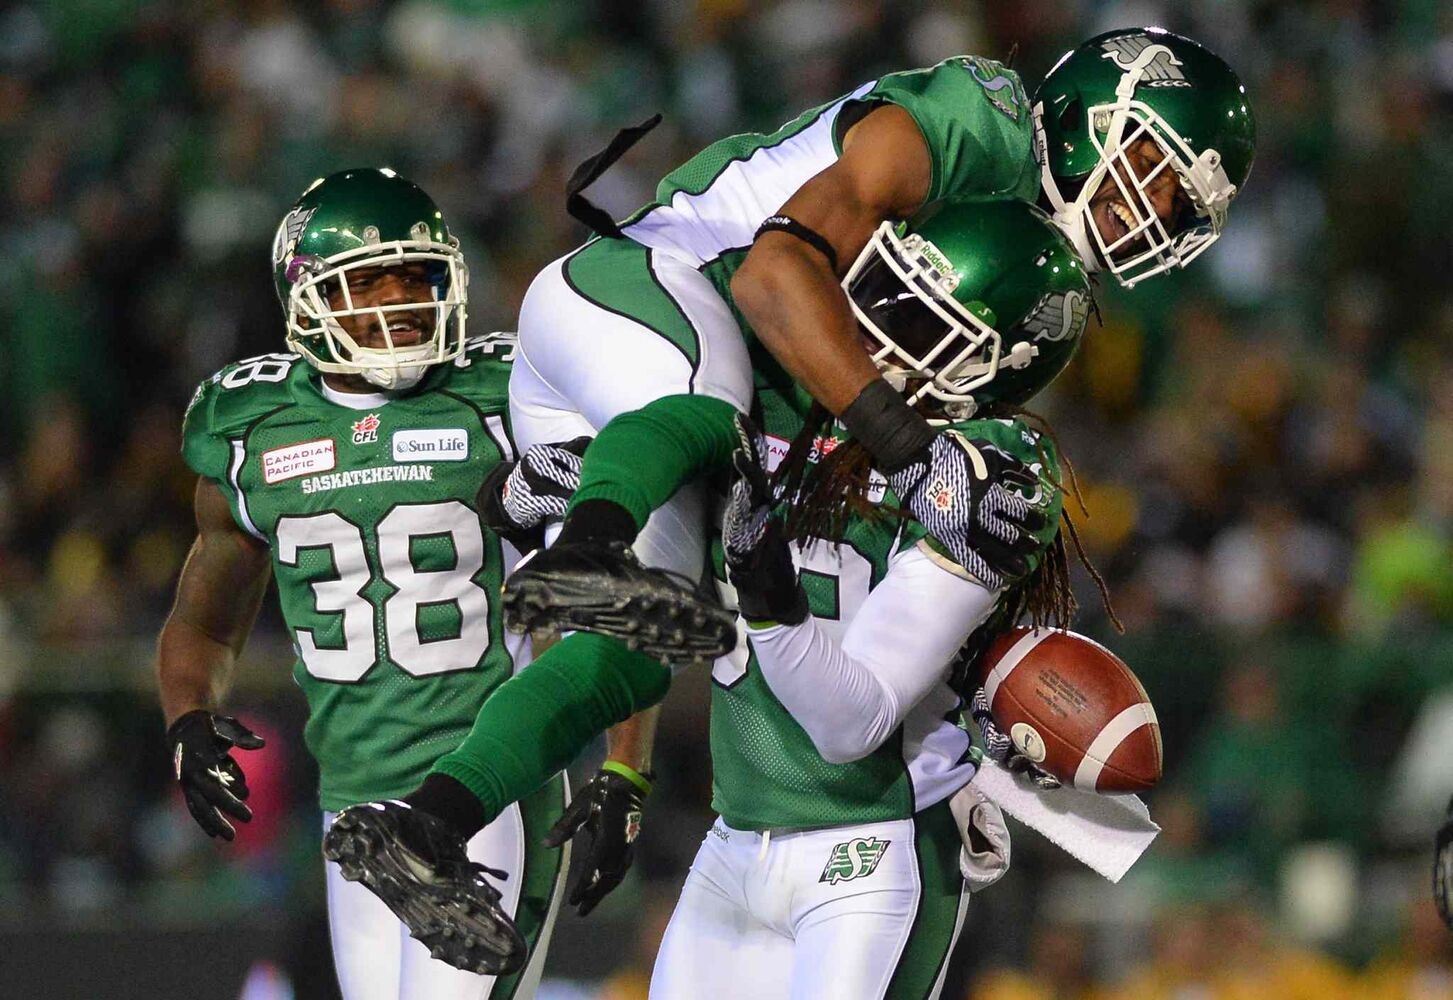 Saskatchewan Roughriders linebacker Weldon Brown (top) is hoisted by teammate defensive back Dwight Anderson following a pass interception against the Hamilton Tiger-Cats during the third quarter. (Liam Richards / The Canadian Press)